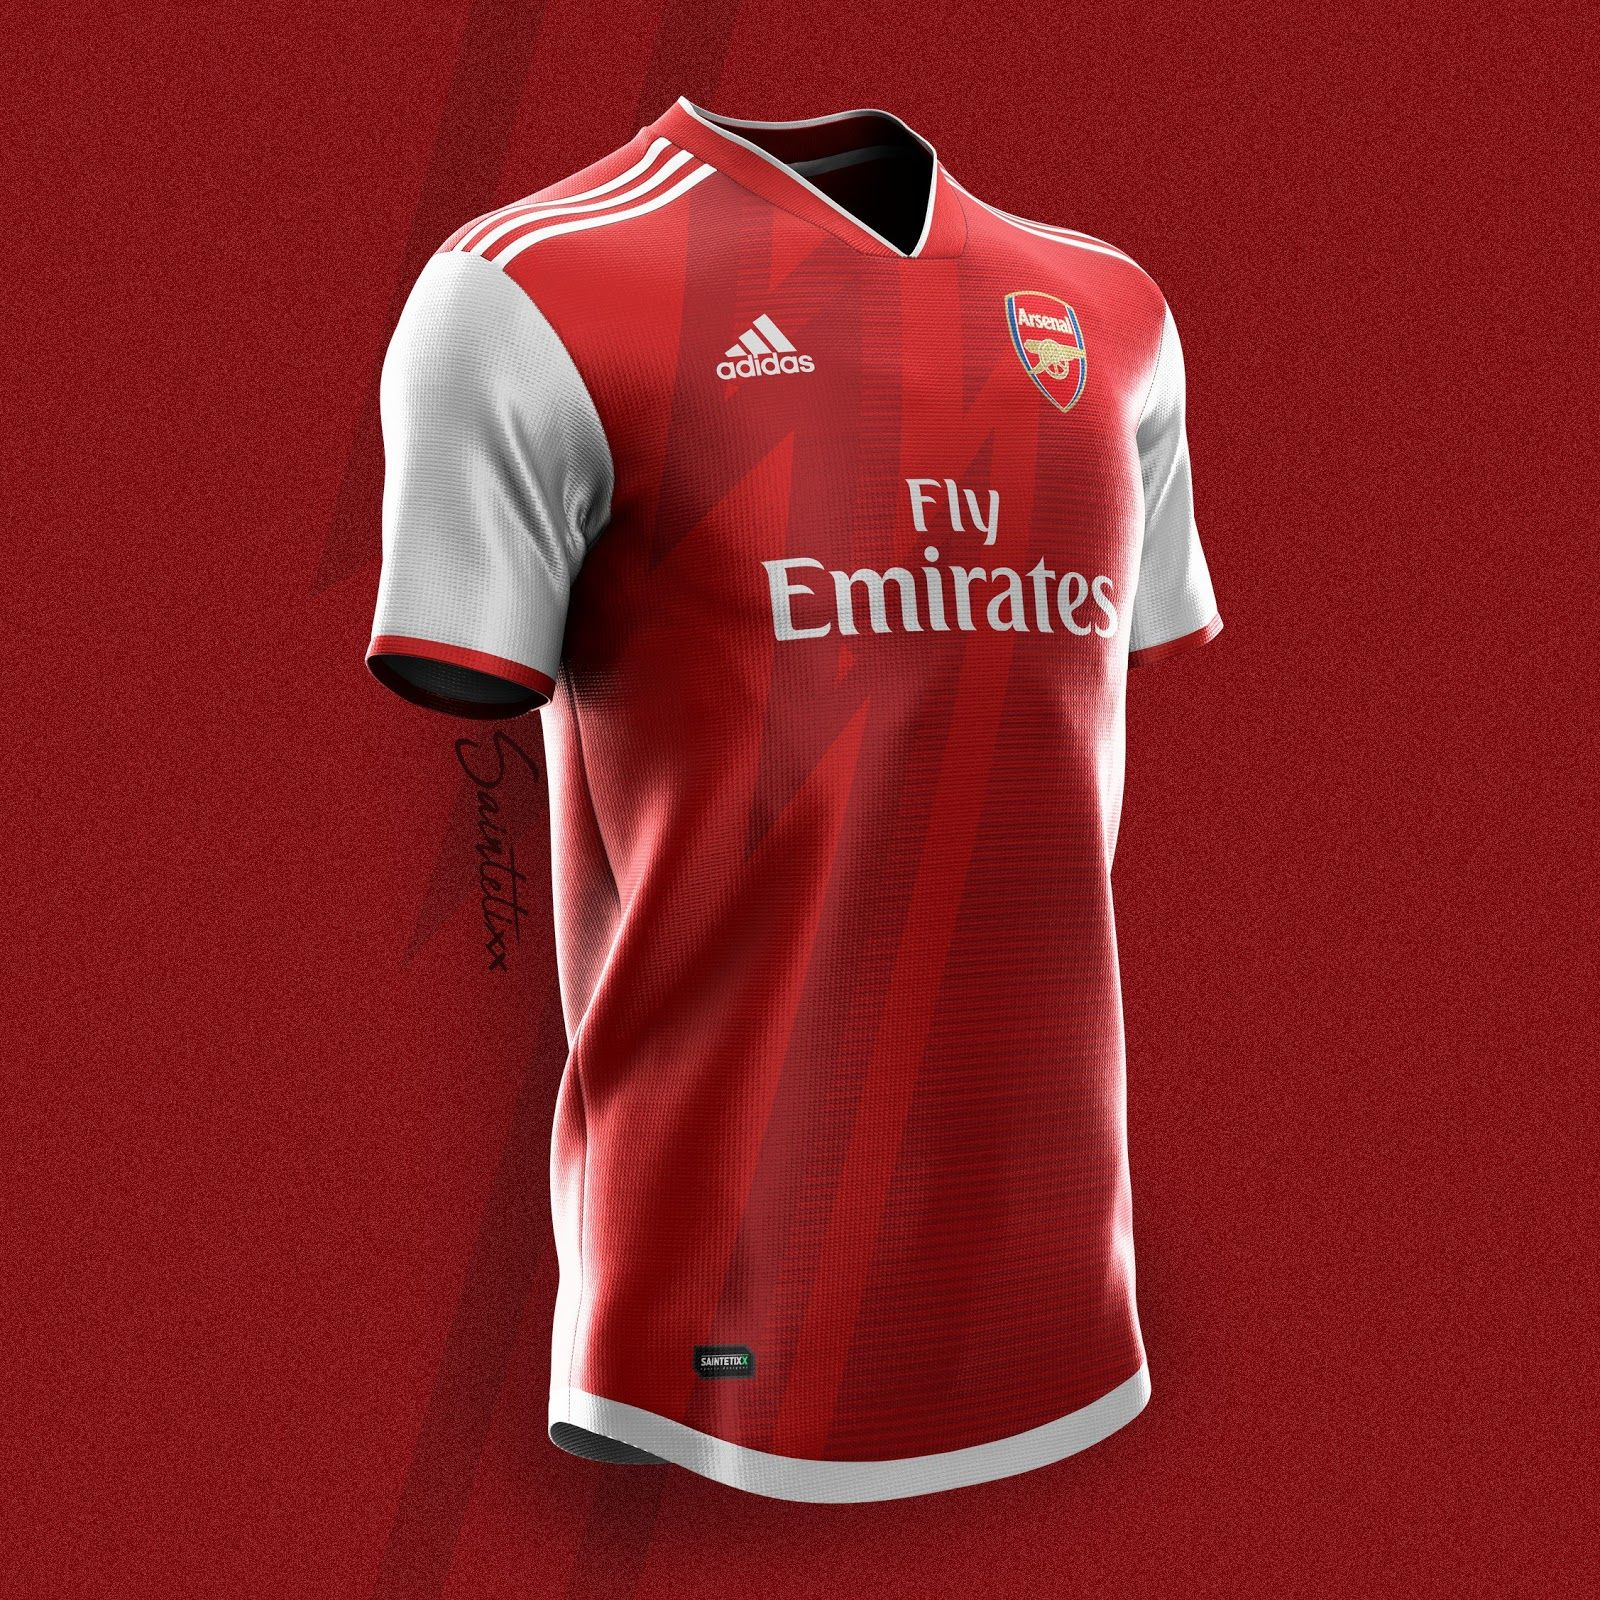 5401b8549 Adidas Arsenal 19-20 Home